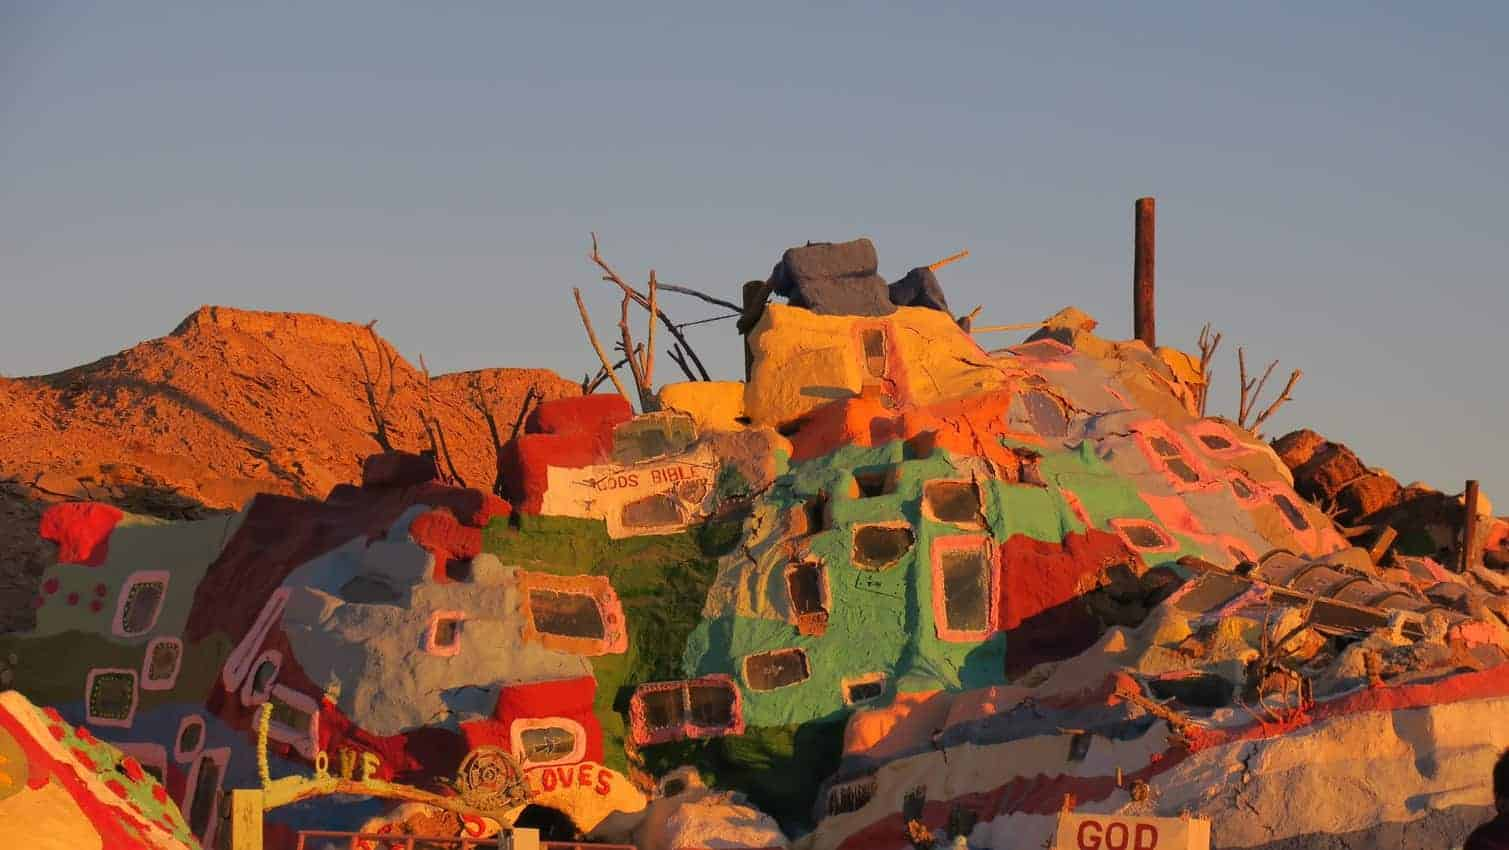 The painted rocks of slab city near the Salton Sea, California.